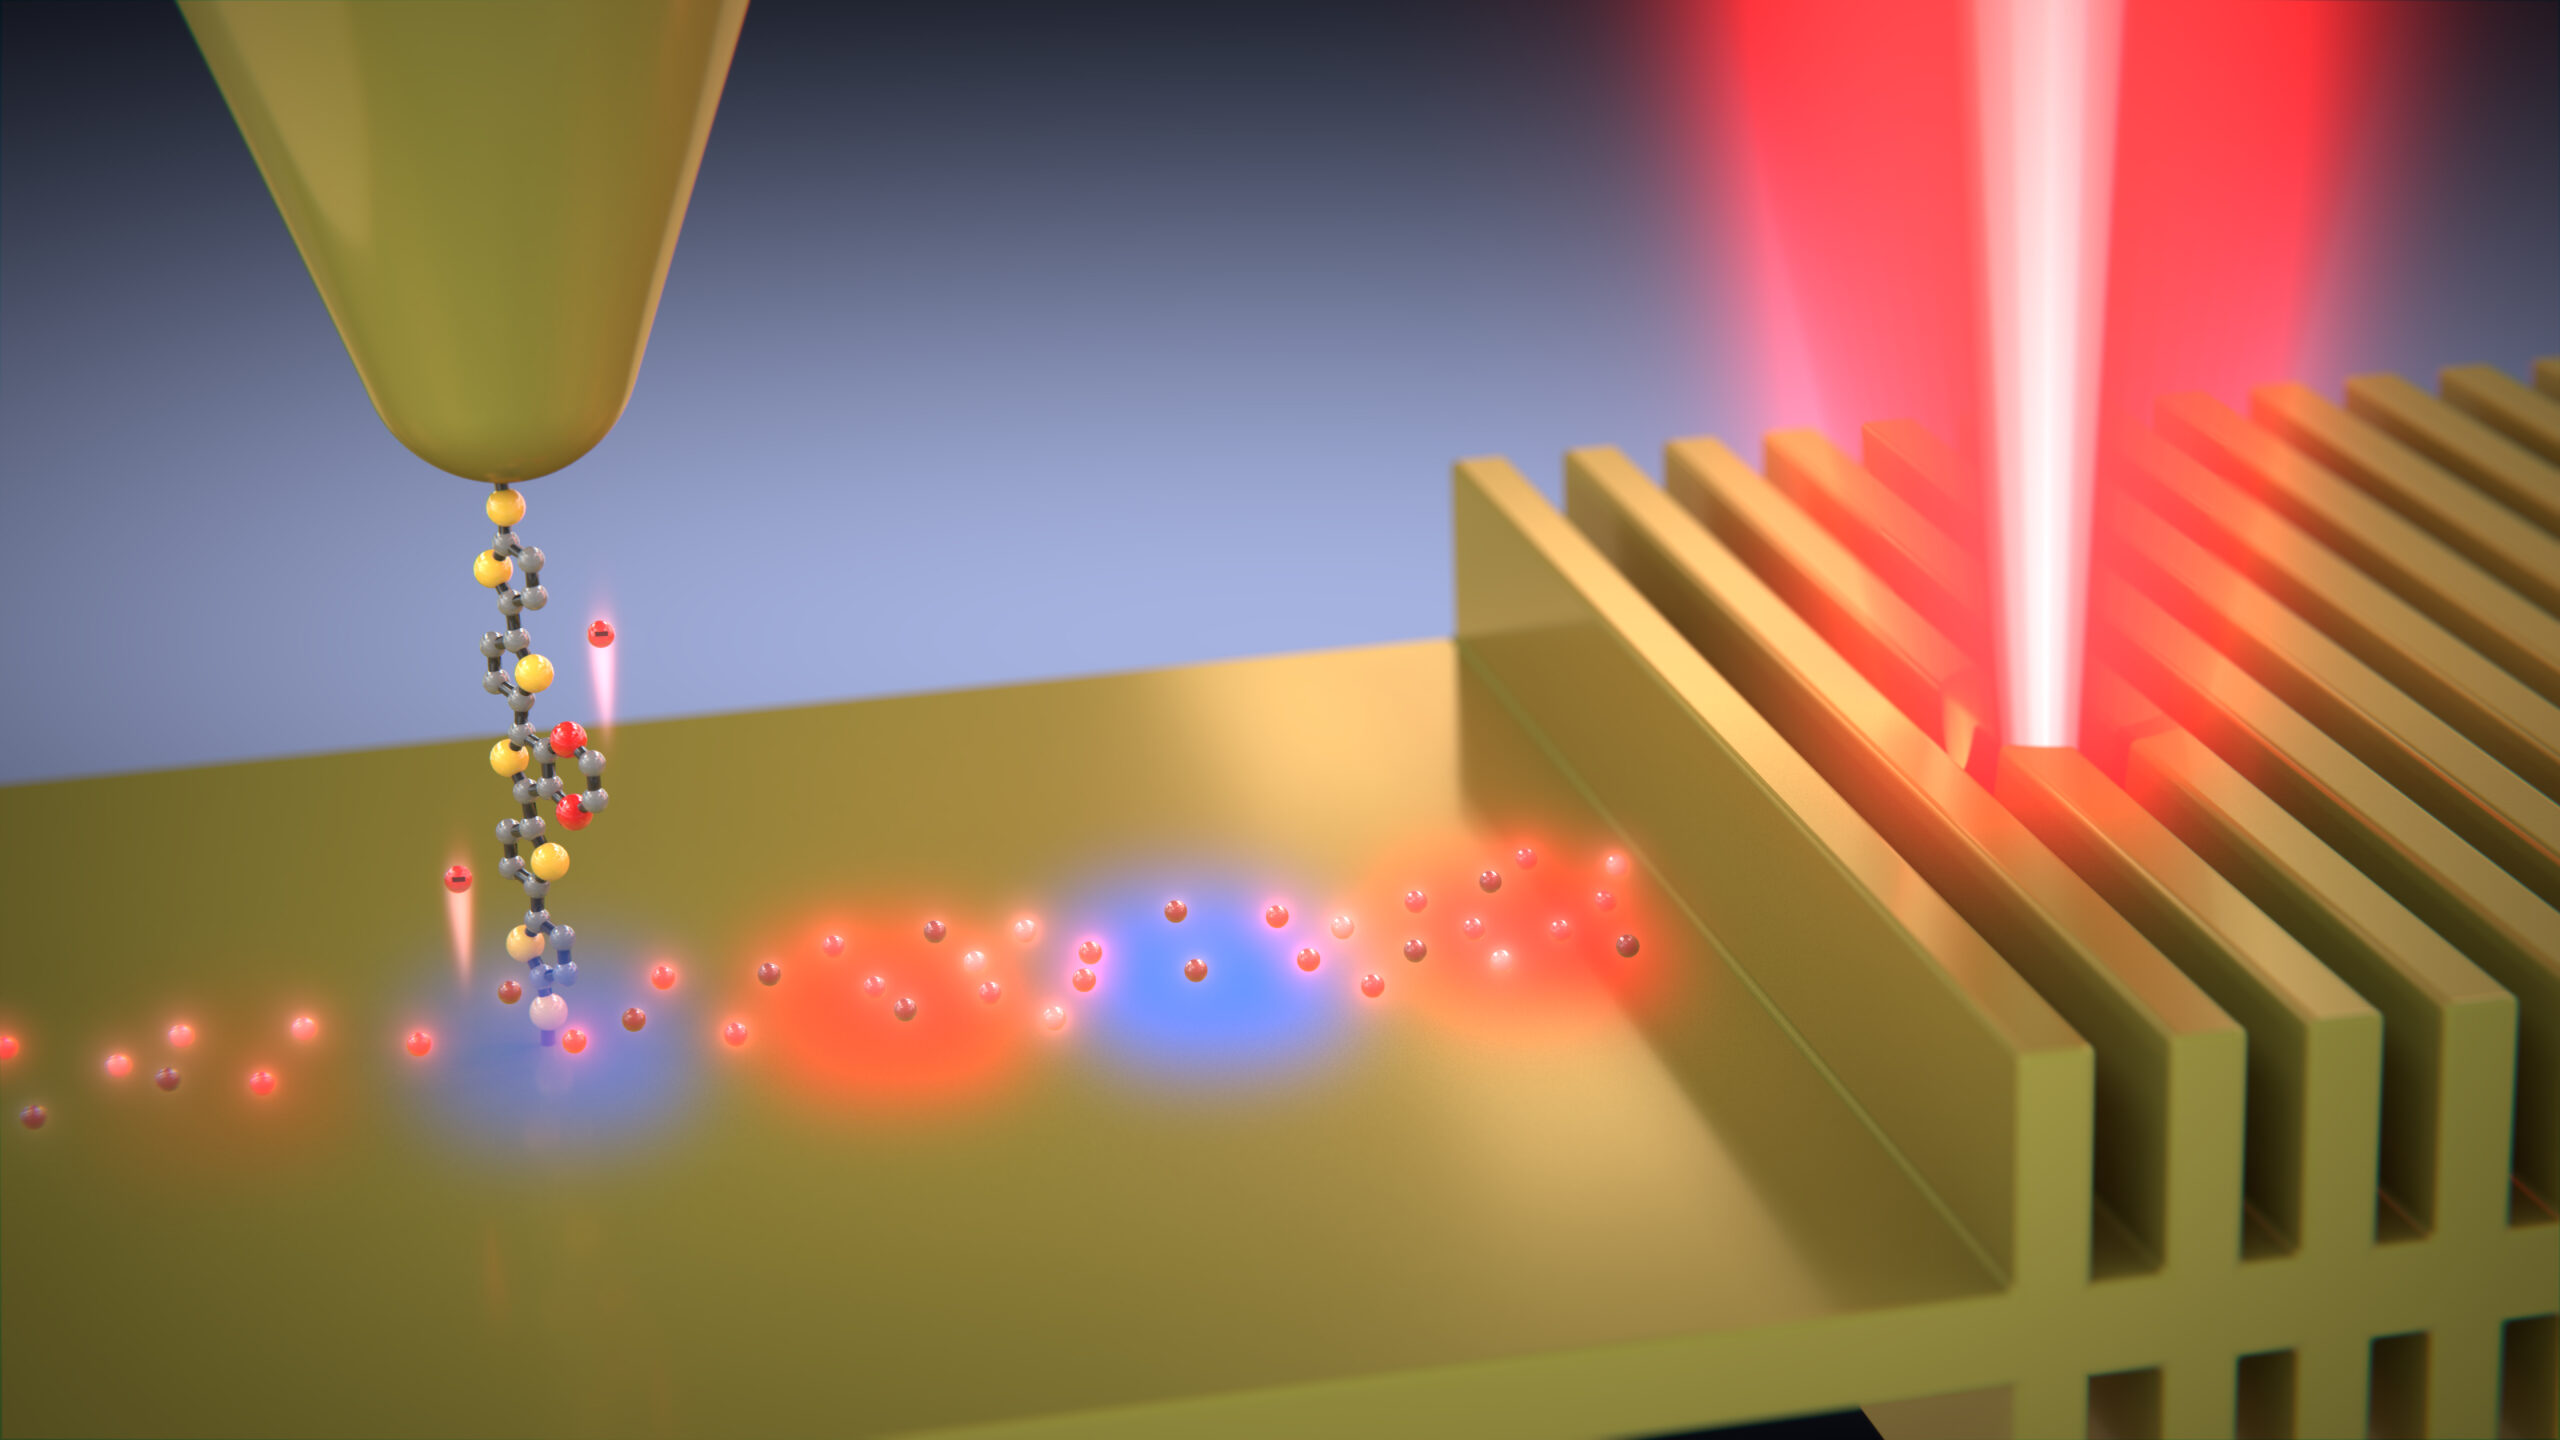 Hot electrons travel along the molecule into the probe tip. The molecule only allows electrons within a narrow range of energies to pass. Image credit: Enrique Shagun, Scixel.